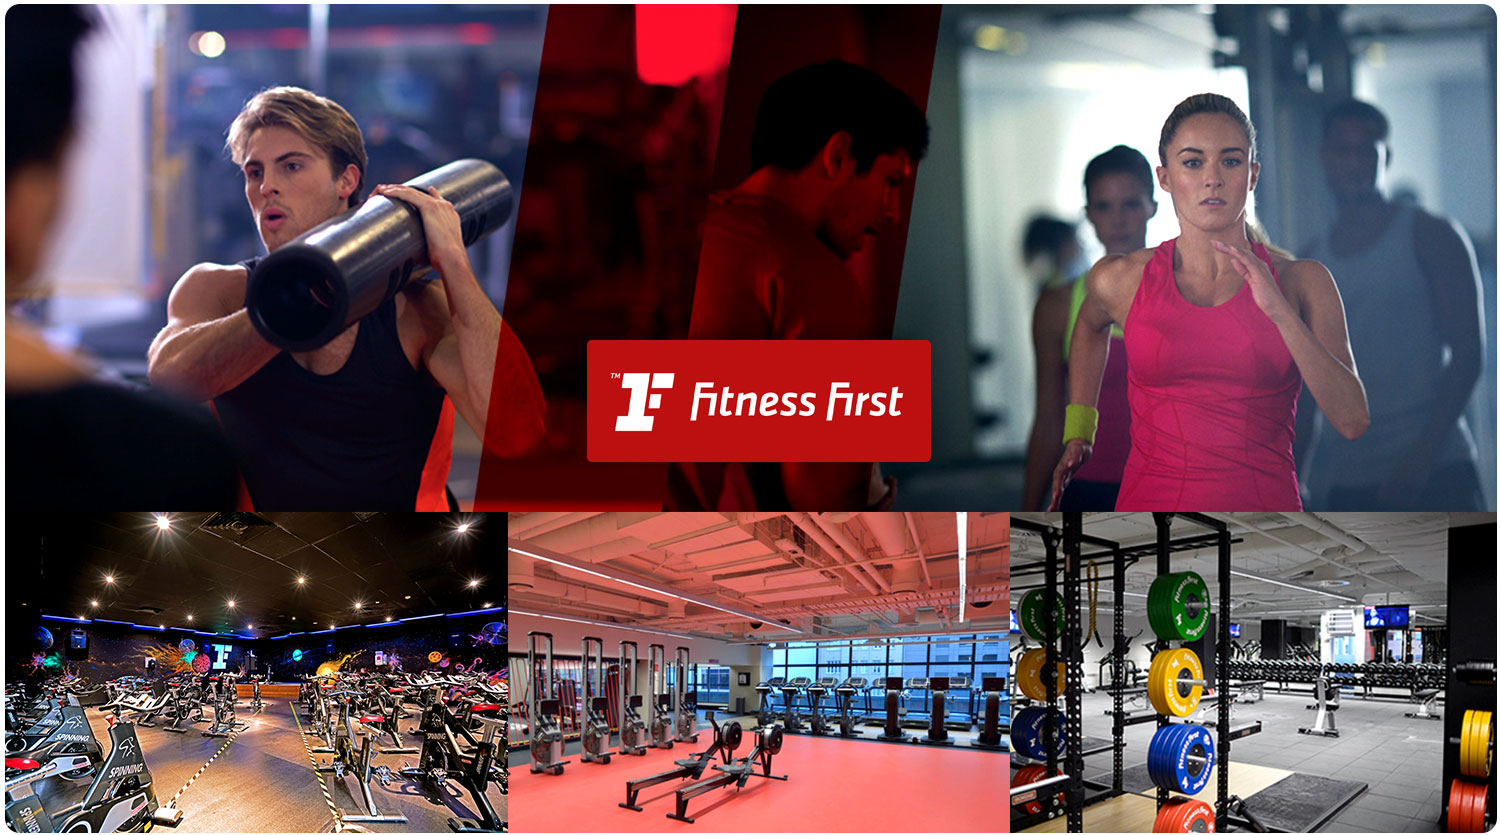 Start your Fitness Journey with Fitness First with only $14.95 for 14 days at Fitness First Richmond VIC. Experience our first class gym and freestyle classes inc. Yoga, HIIT, Boxing, Les Mills and more. Take the first step with Fitness First Richmond VIC.